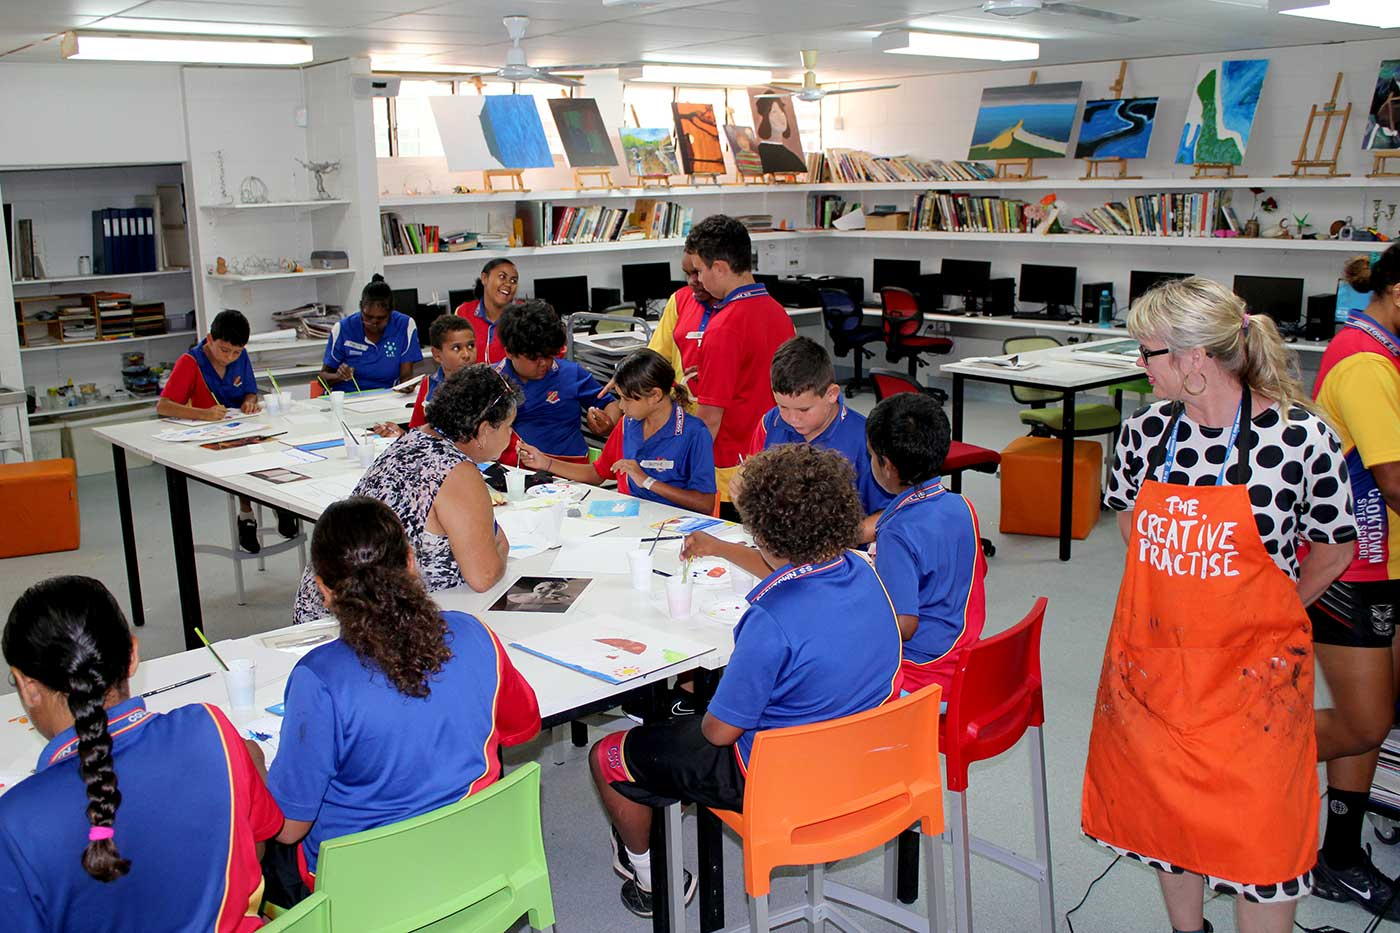 Primary school students sit at desks working on paintings while a woman, standing, talks with them. - click to view larger image